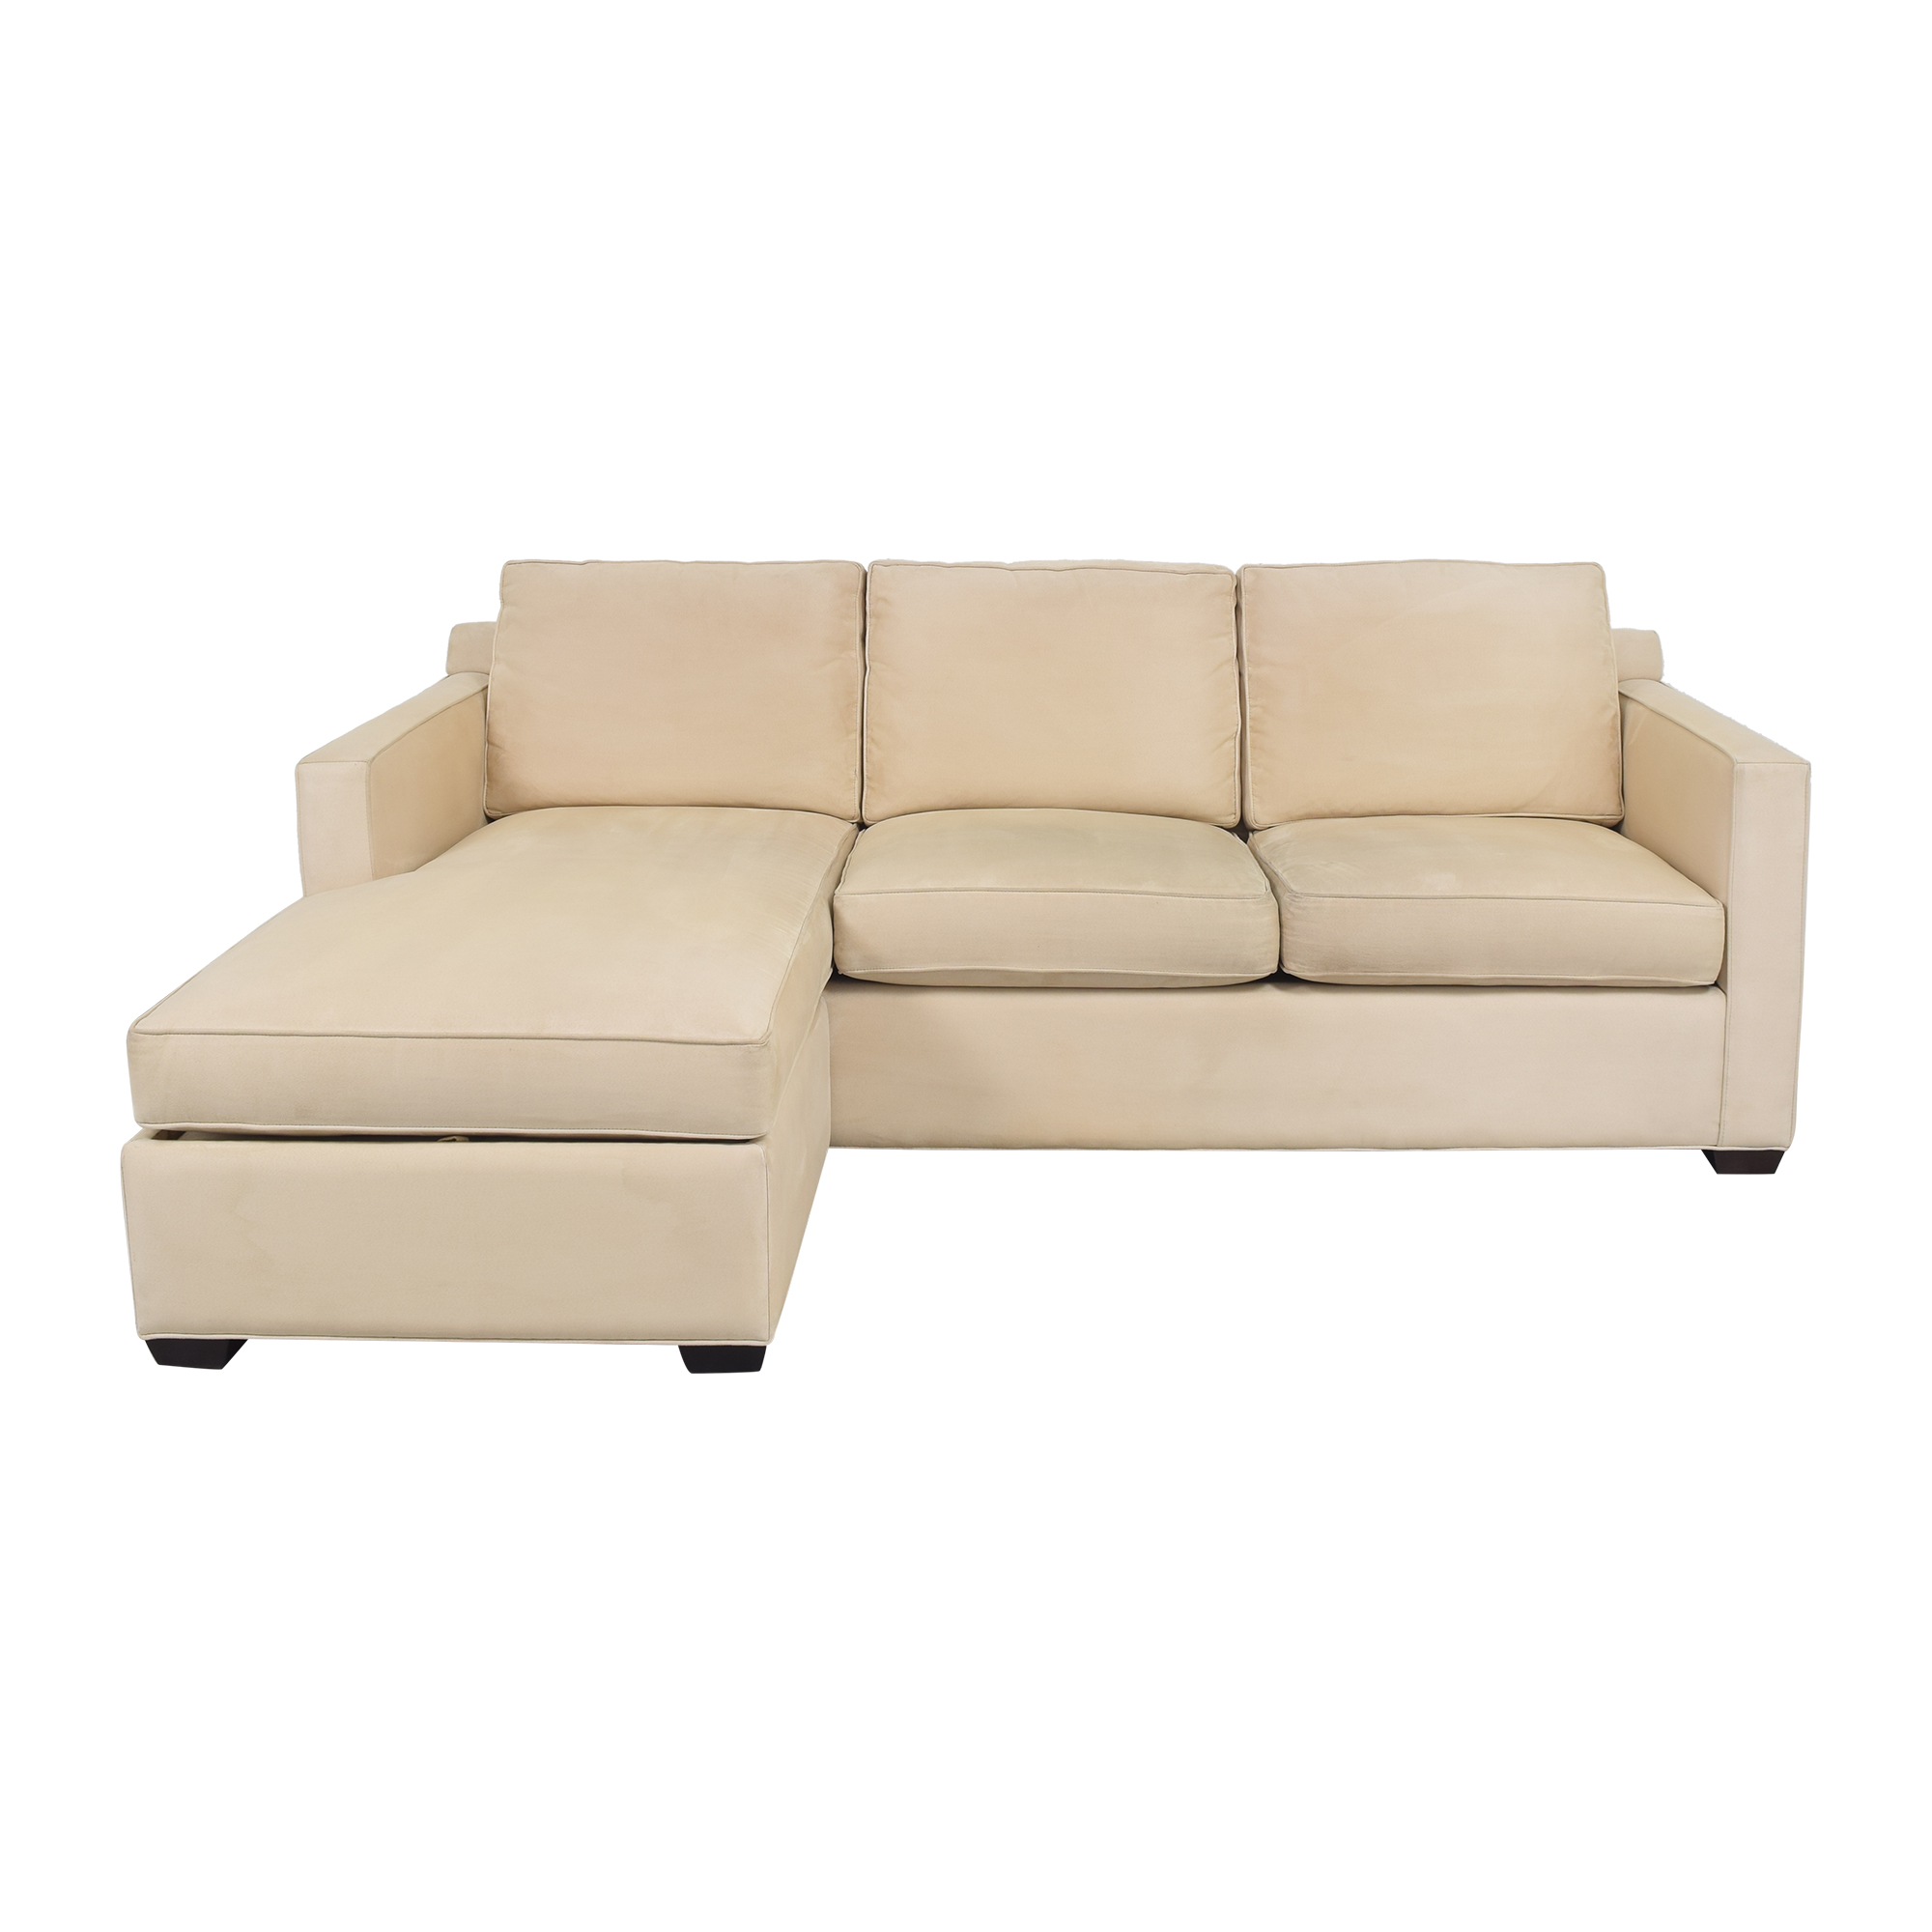 Crate & Barrel Crate and Barrel Chaise Sectional Sofa used